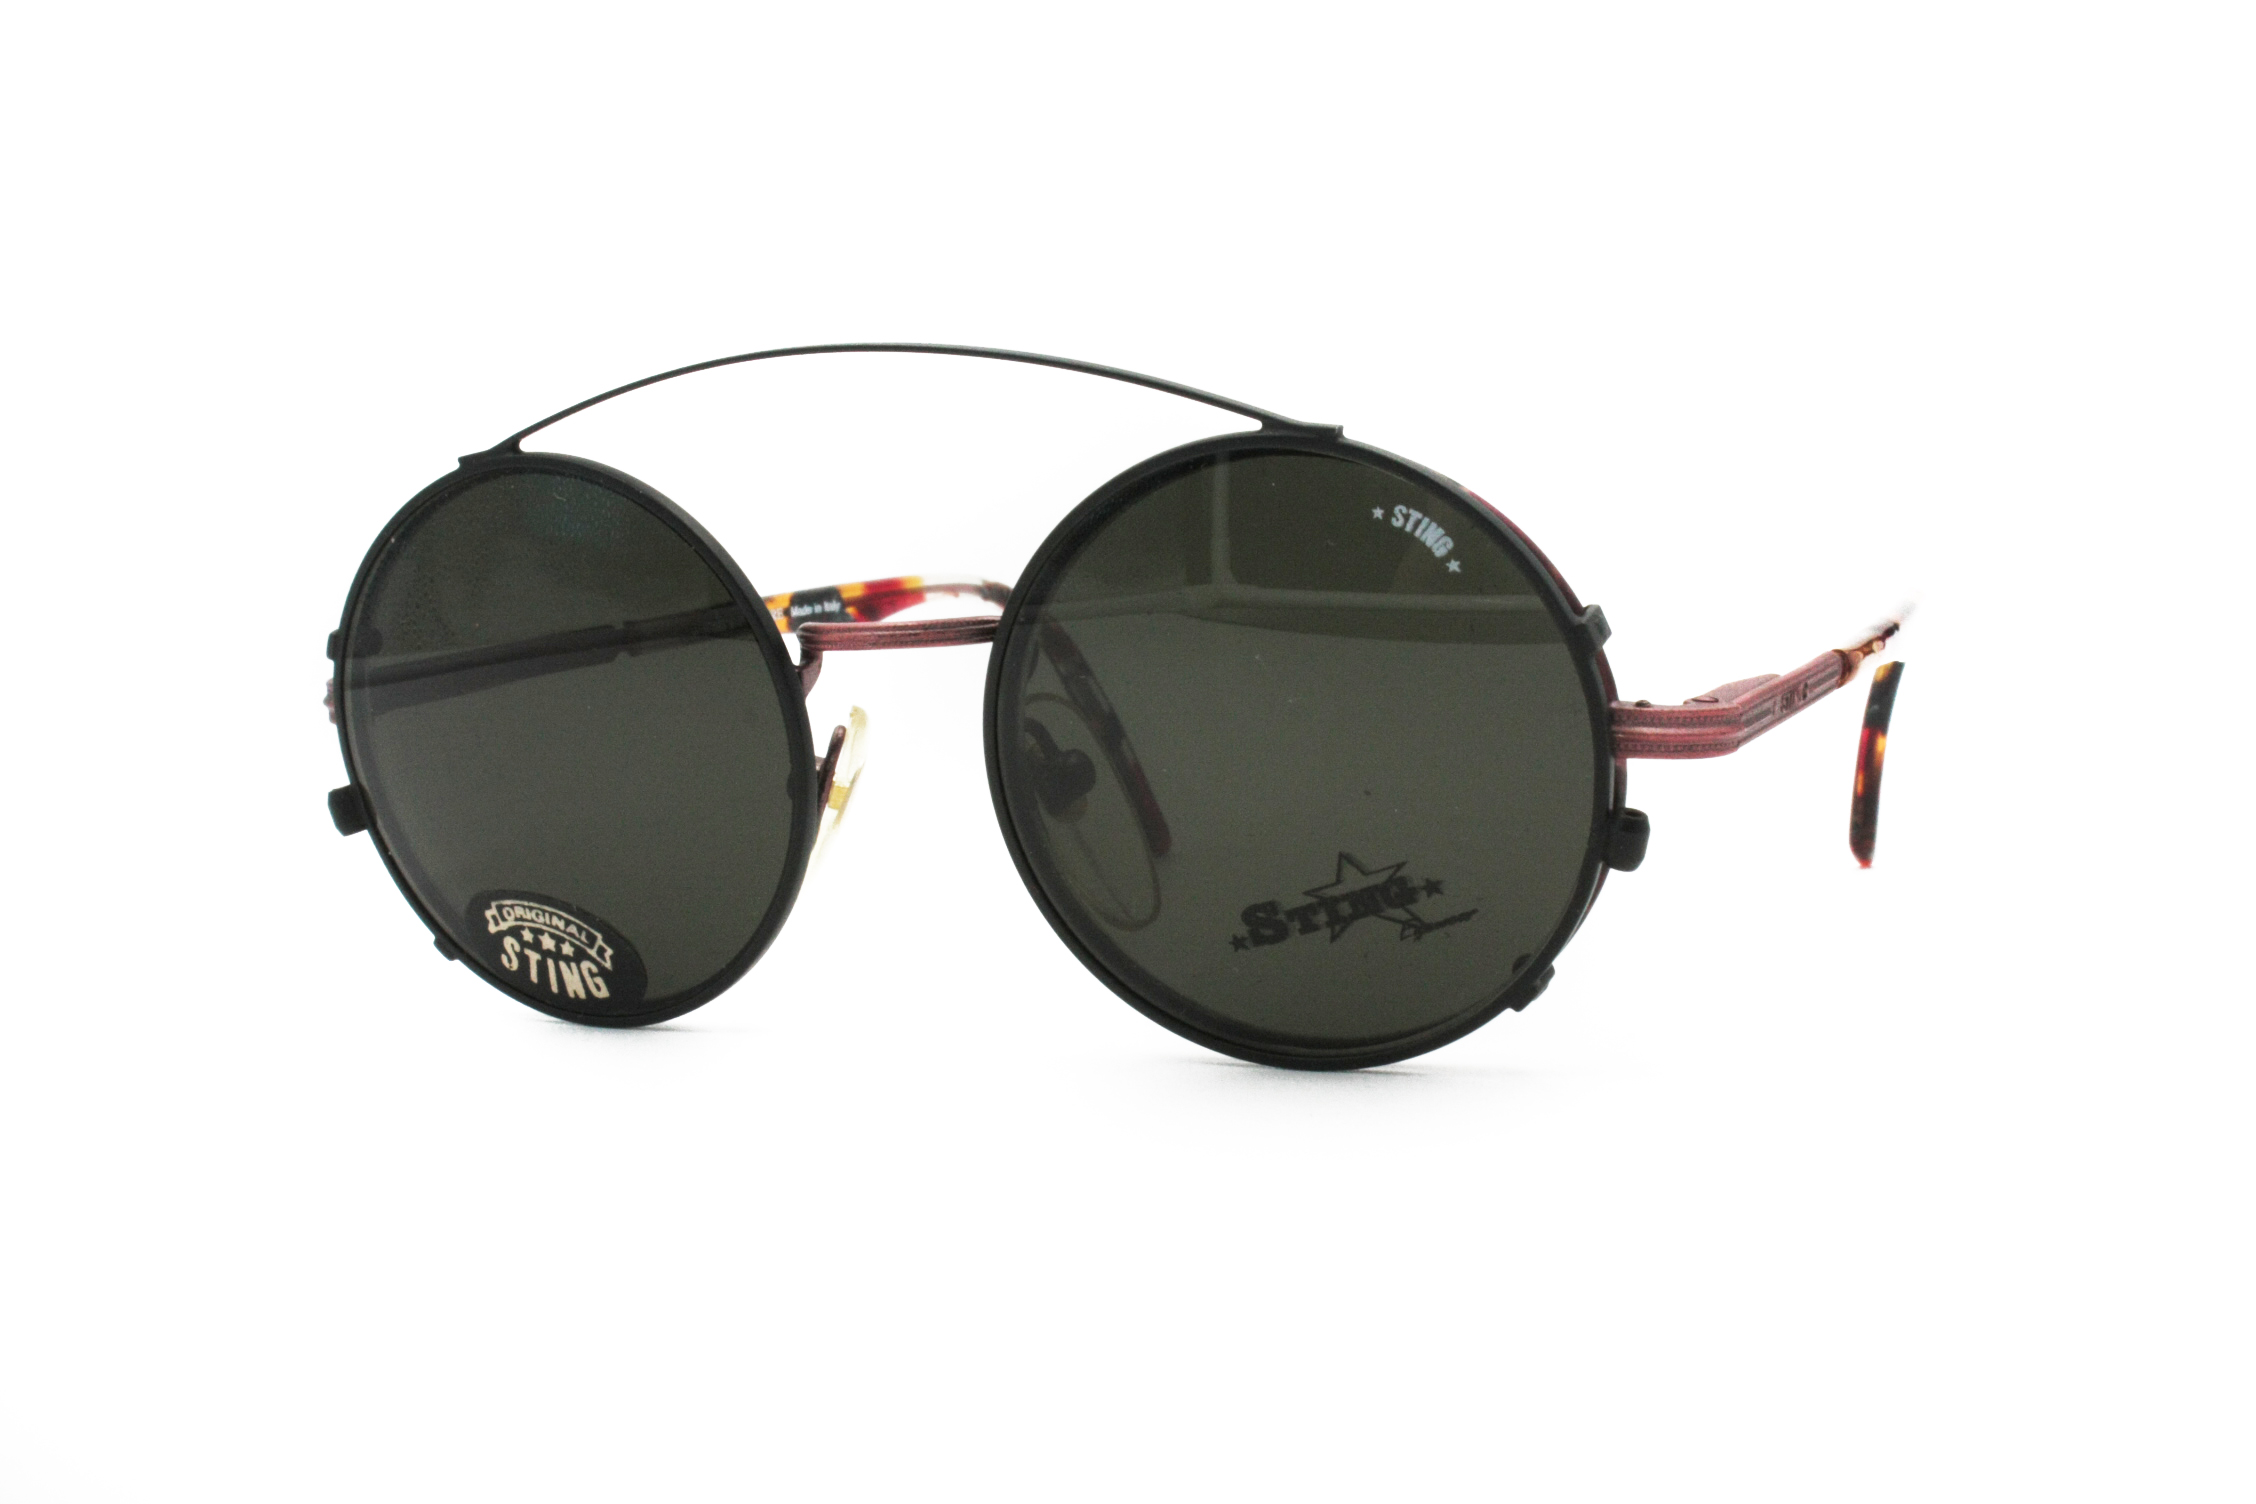 eae20ffe102 Sting Vintage STING eyewear round pantos with clip    Rare deadstock glasses  made in Italy    Pop art decoration around lenses